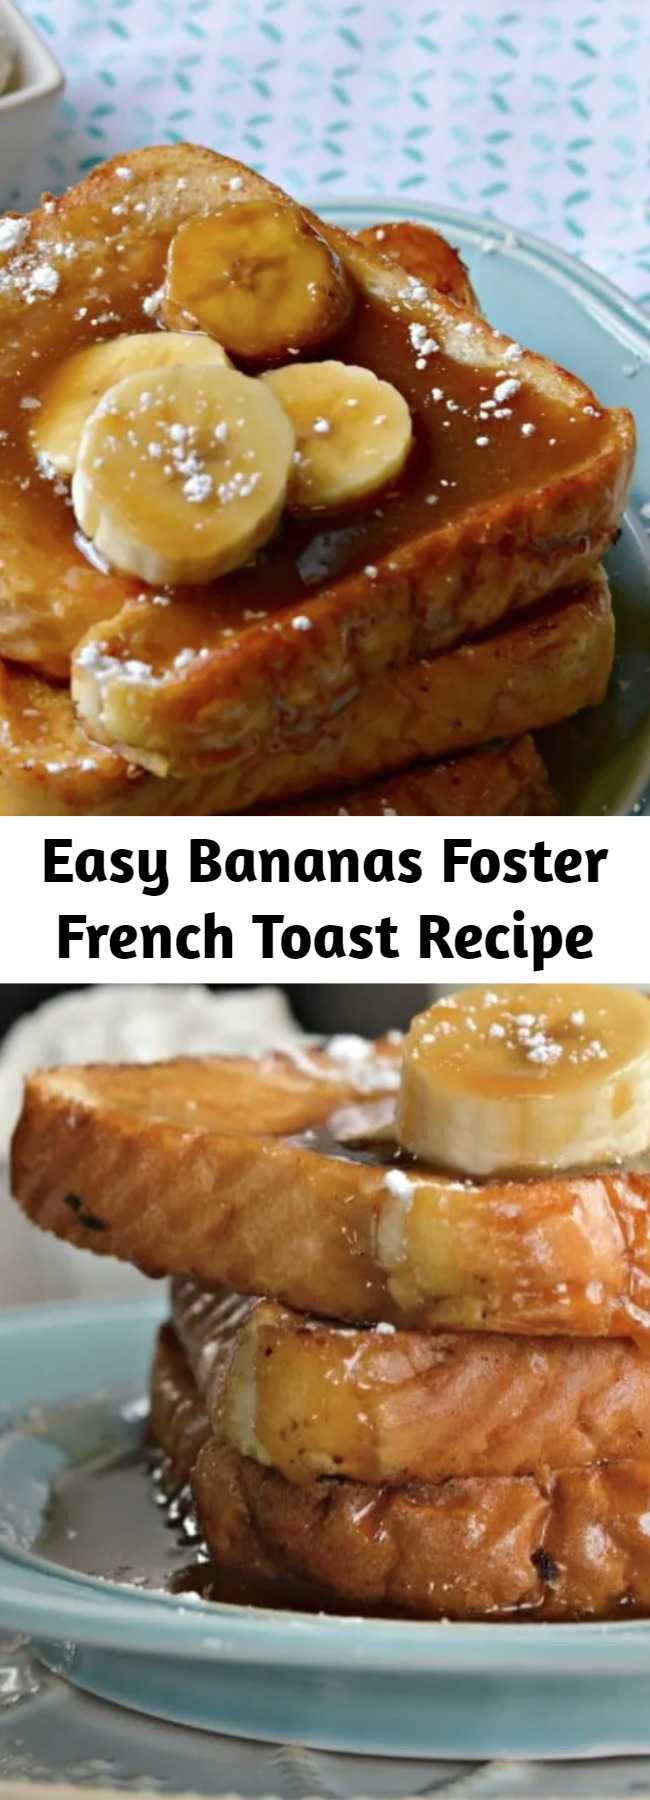 Easy Bananas Foster French Toast Recipe - Bananas Foster French Toast is a perfect recipe for any occasion. The flavors are unbeatable and everyone will love it.